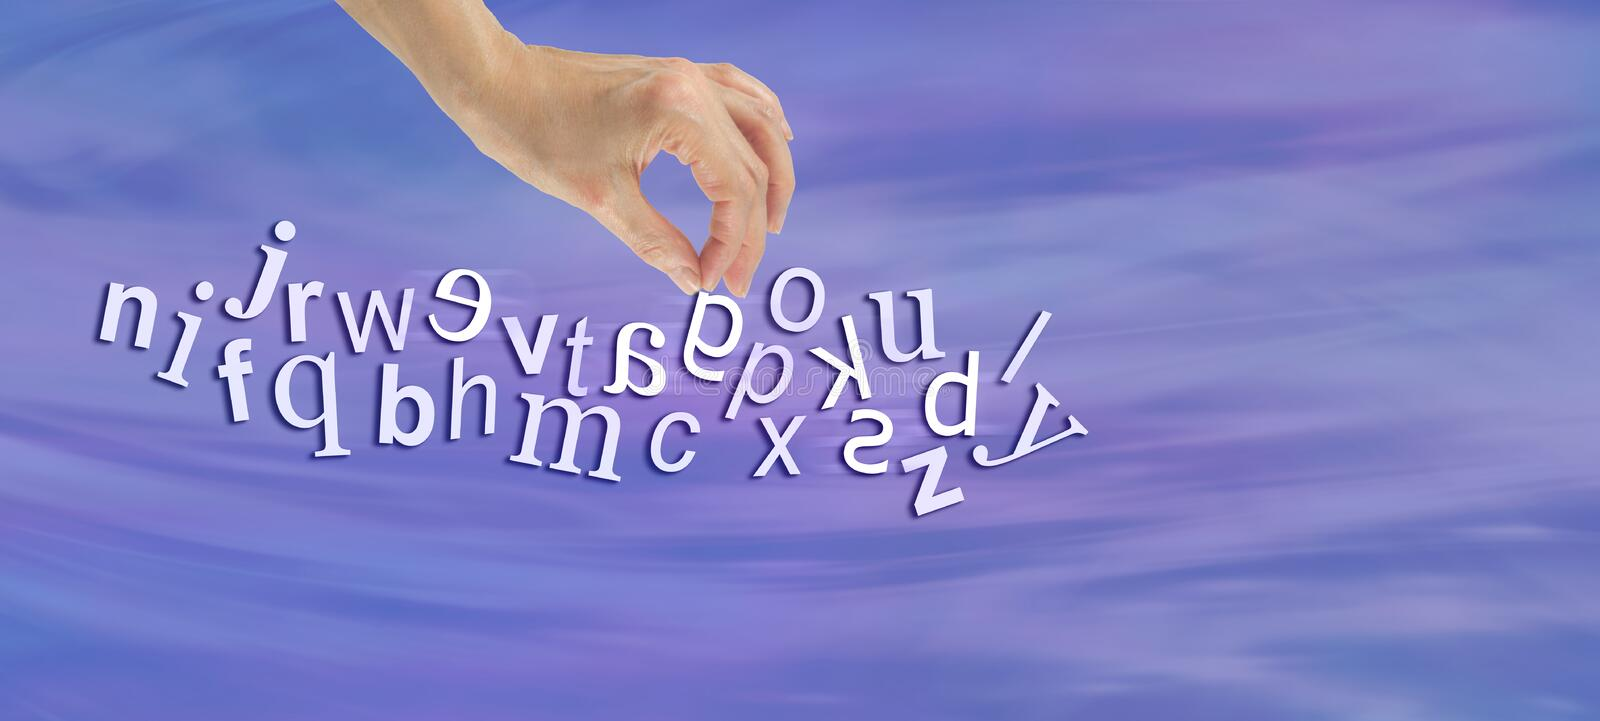 Pinpointing Dyslexia Website Banner royalty free stock images